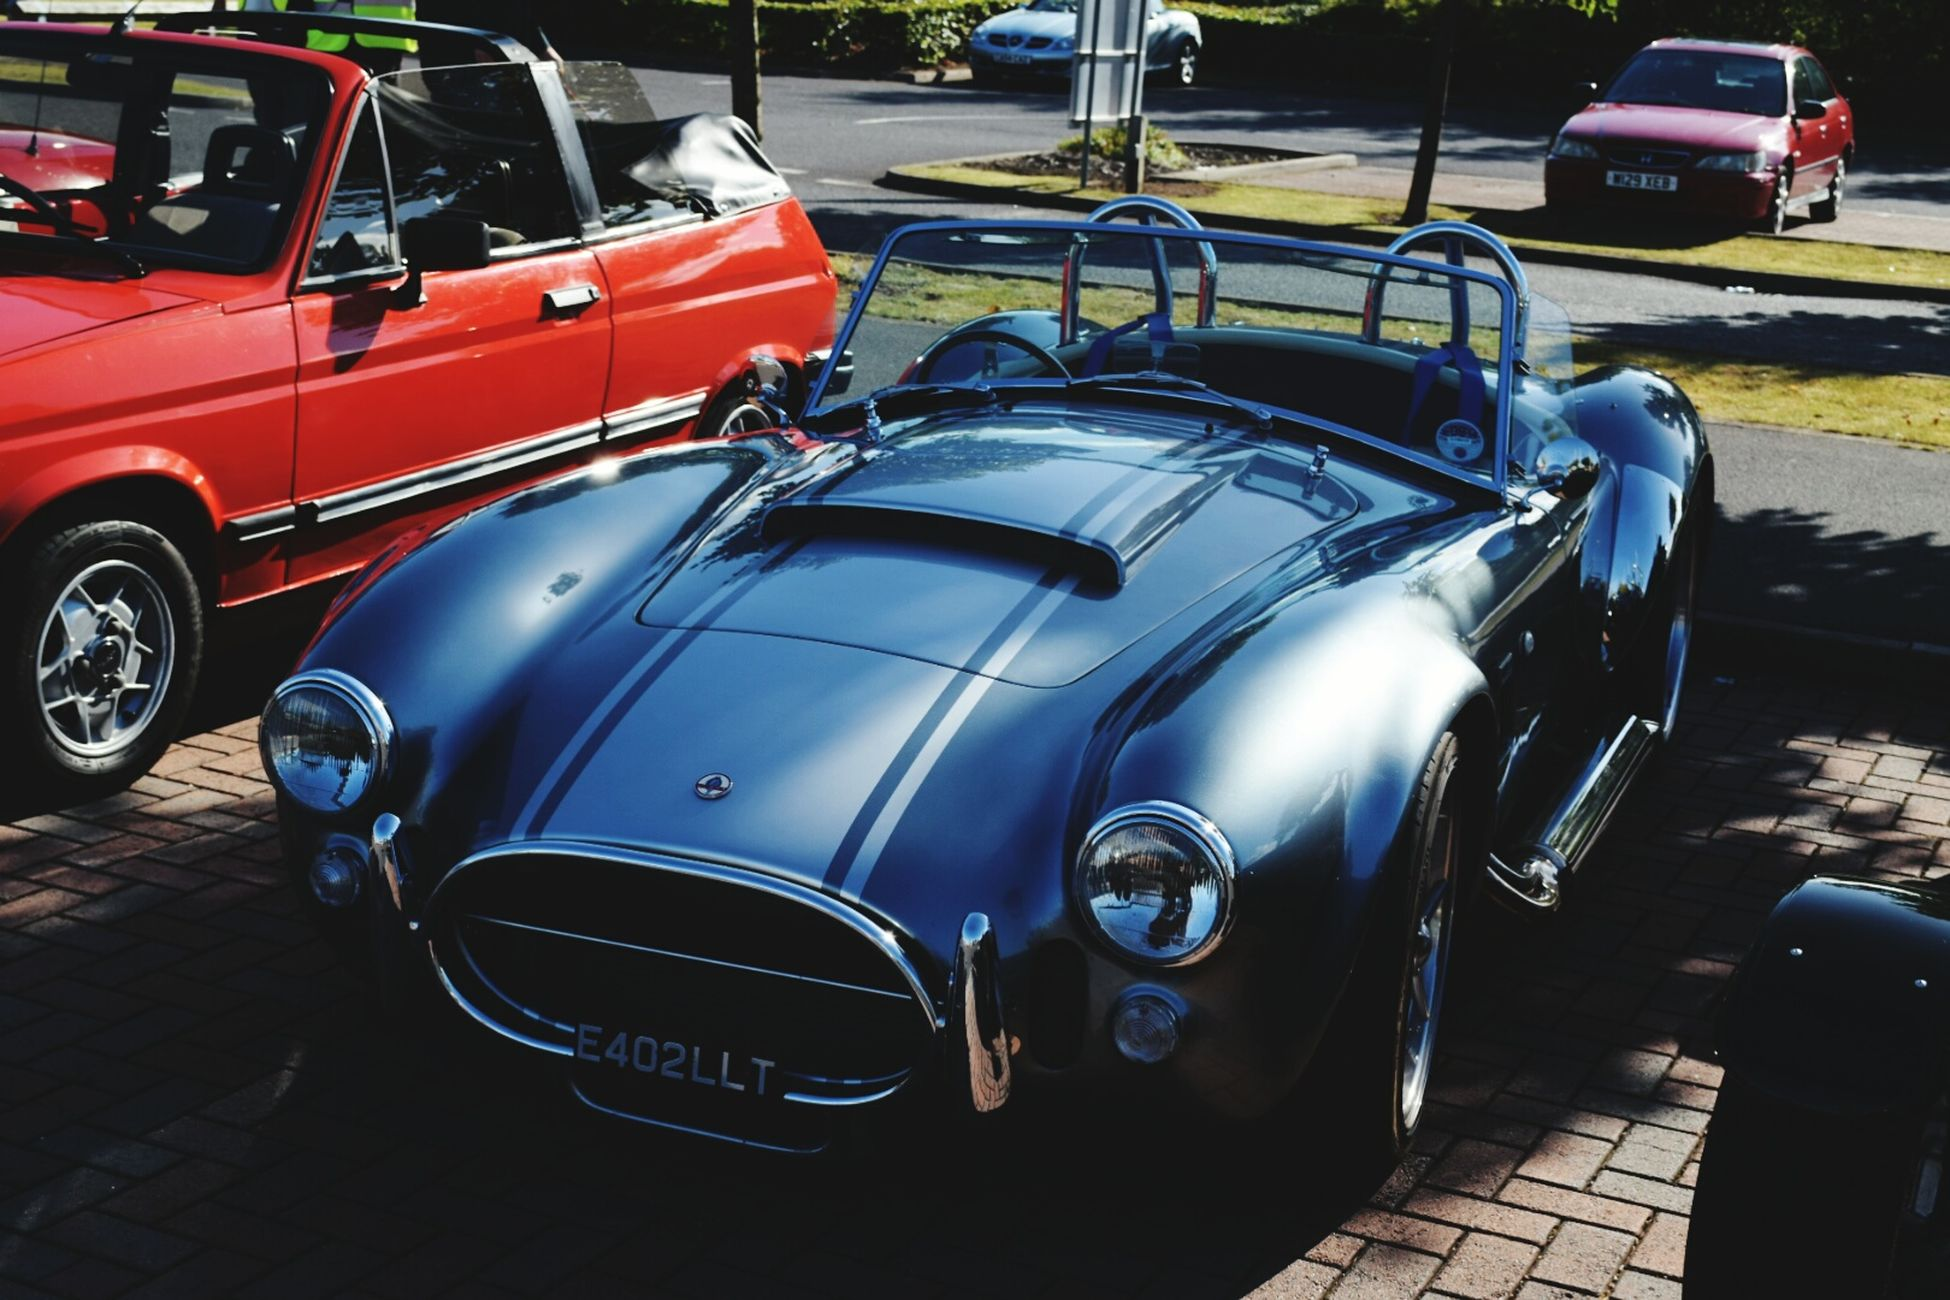 AC Cobra. classic cars. Love It . At An Exhibition